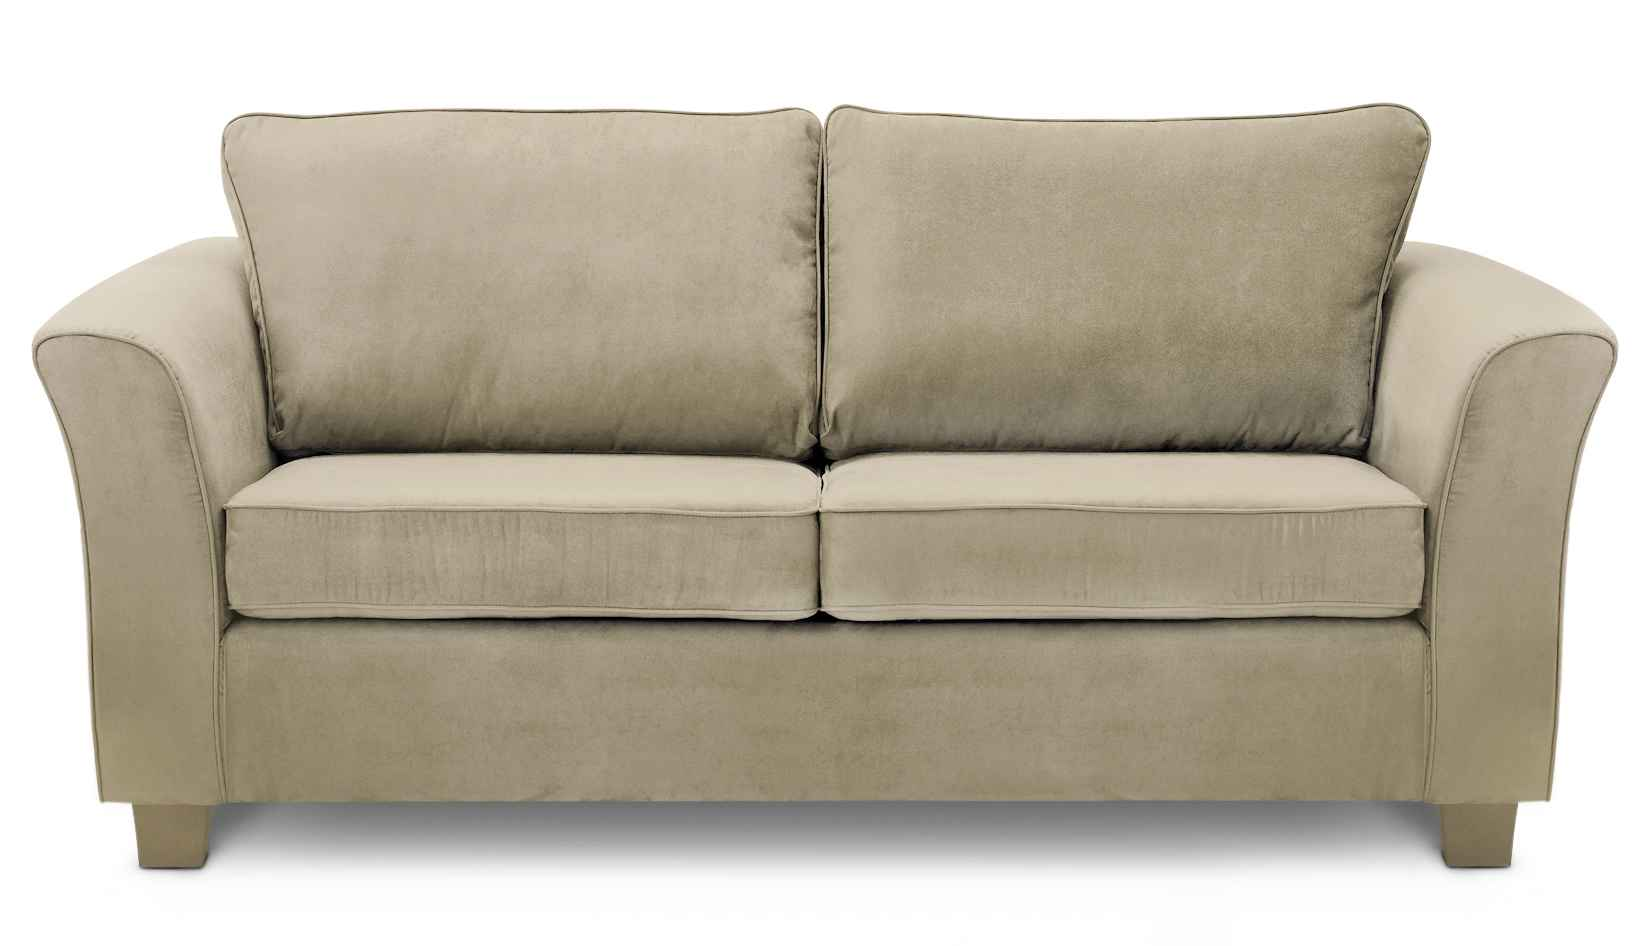 Cheap sofas and loveseats sets Discount sofa loveseat